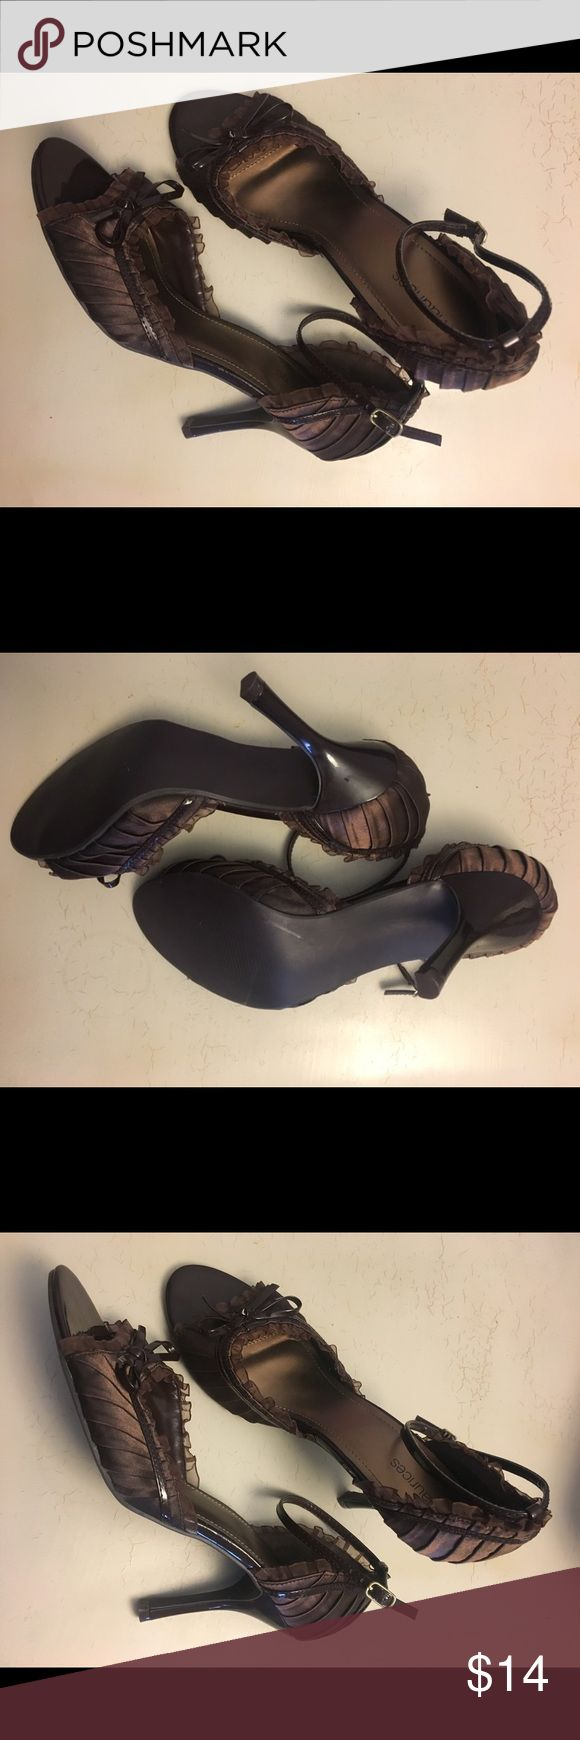 Maurices NWOT Size 10 Brown Ruffle Heels These flirty brown stilleto peep-toe heels have never been worn and fit true to size. Maurices brand, size 10. Feel free to message me with any questions/ make an offer! 😊 Maurices Shoes Heels